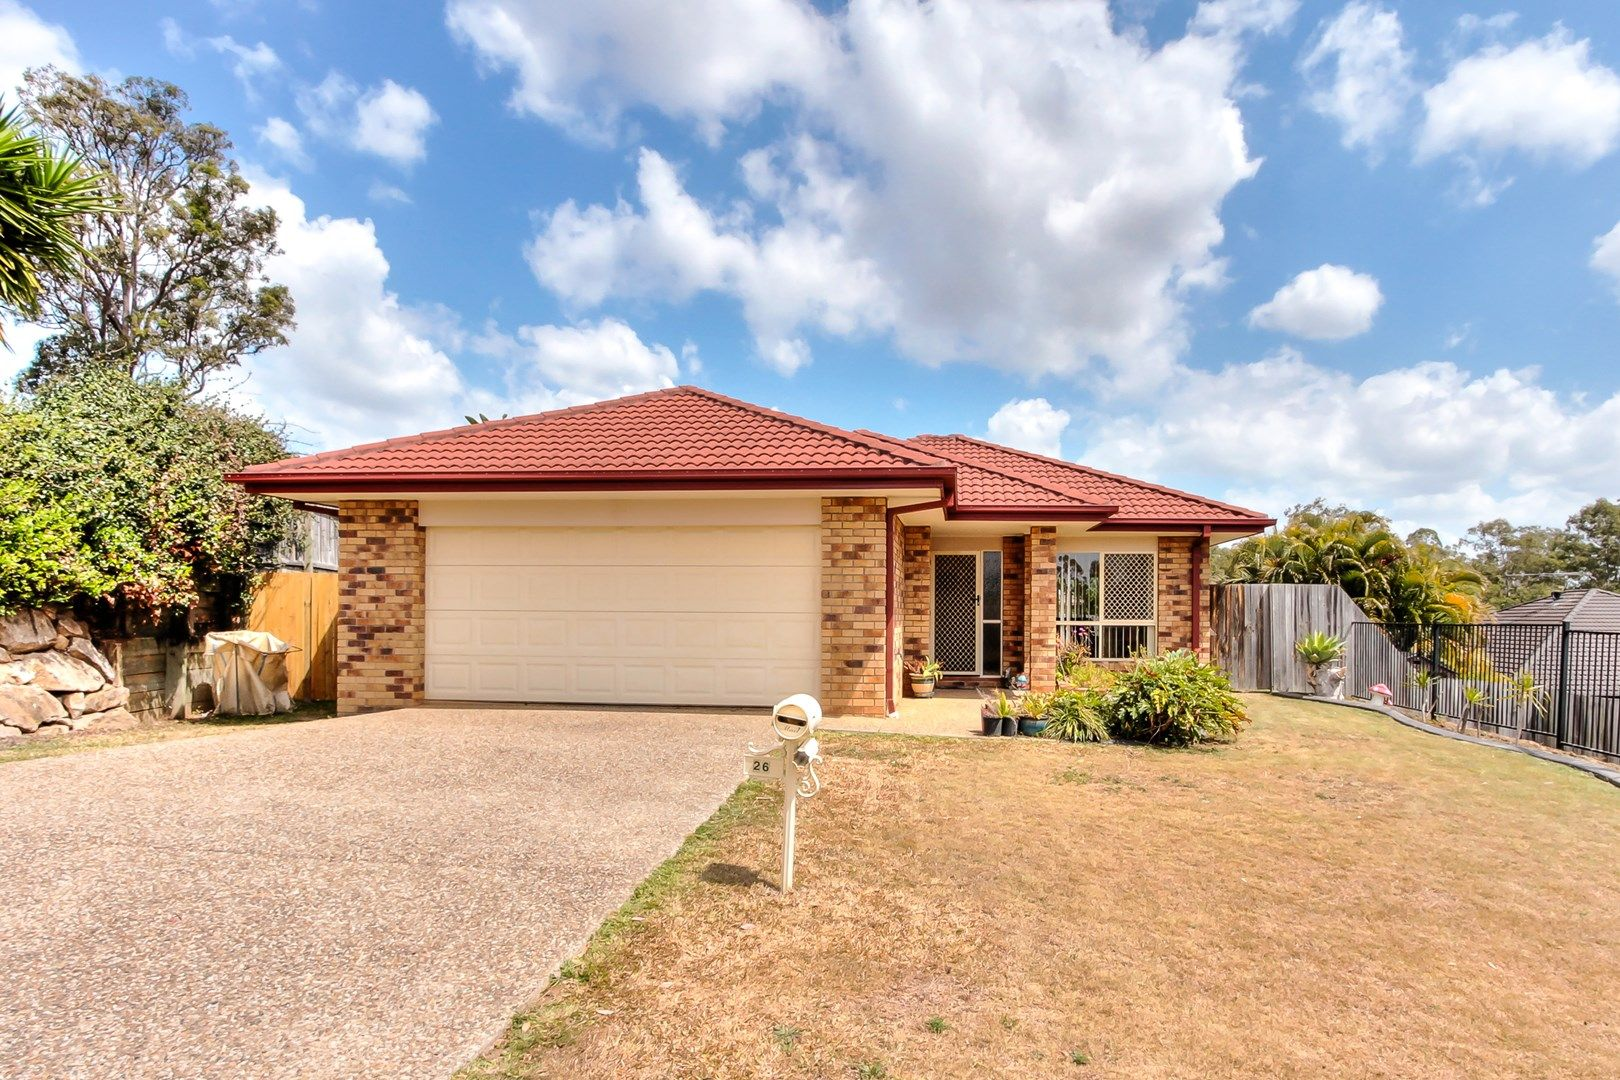 26 Holliday, Edens Landing QLD 4207, Image 0